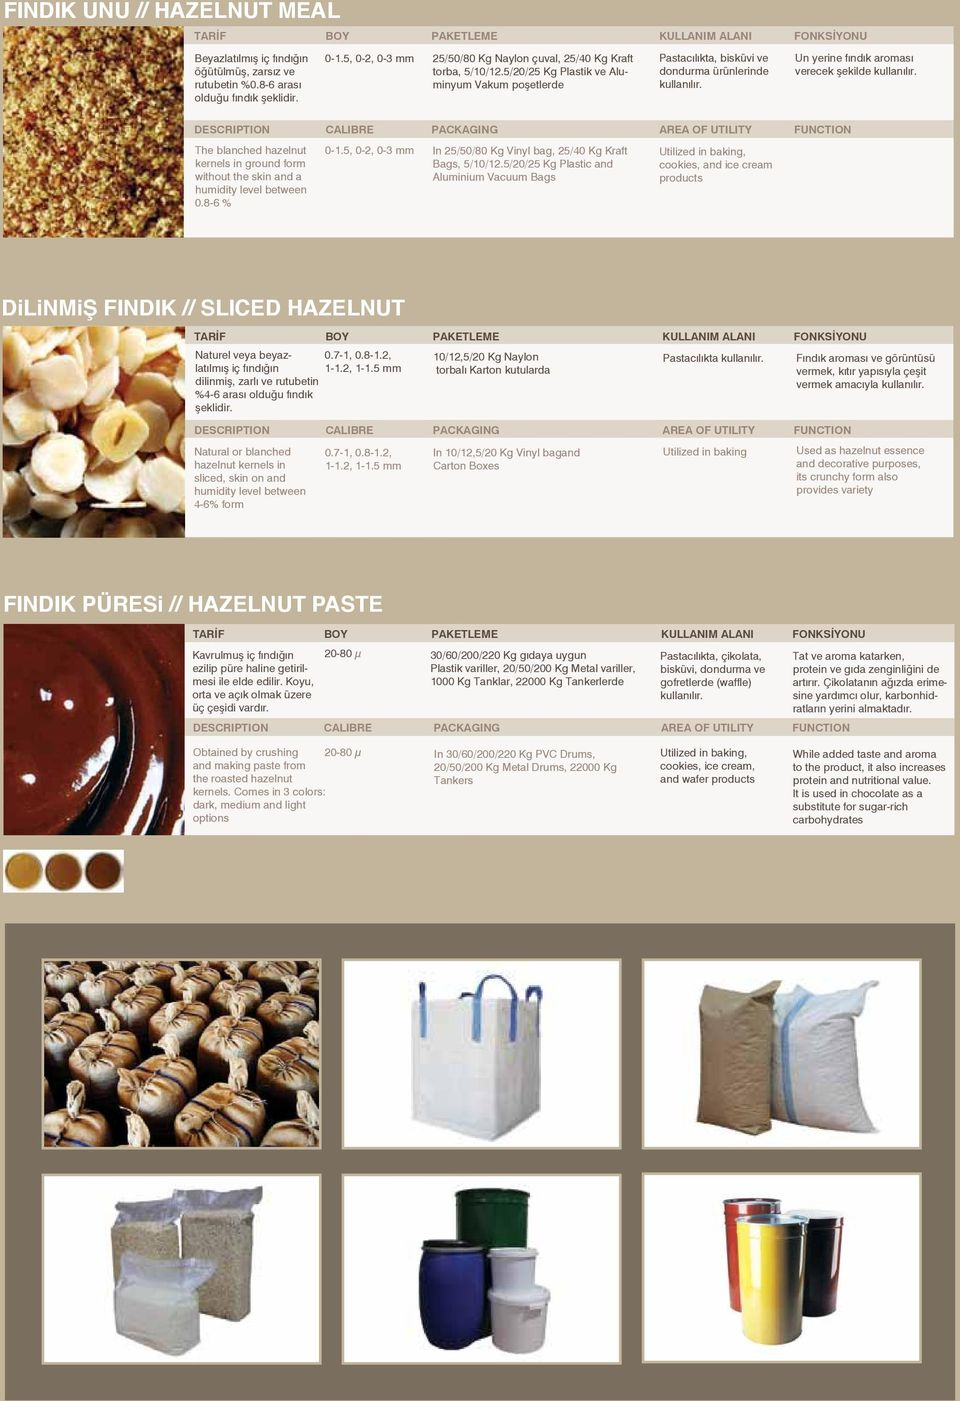 The blanched hazelnut kernels in ground form without the skin and a humidity level between 0.8-6 % 0-1.5, 0-2, 0-3 mm In 25/50/80 Kg Vinyl bag, 25/40 Kg Kraft Bags, 5/10/12.